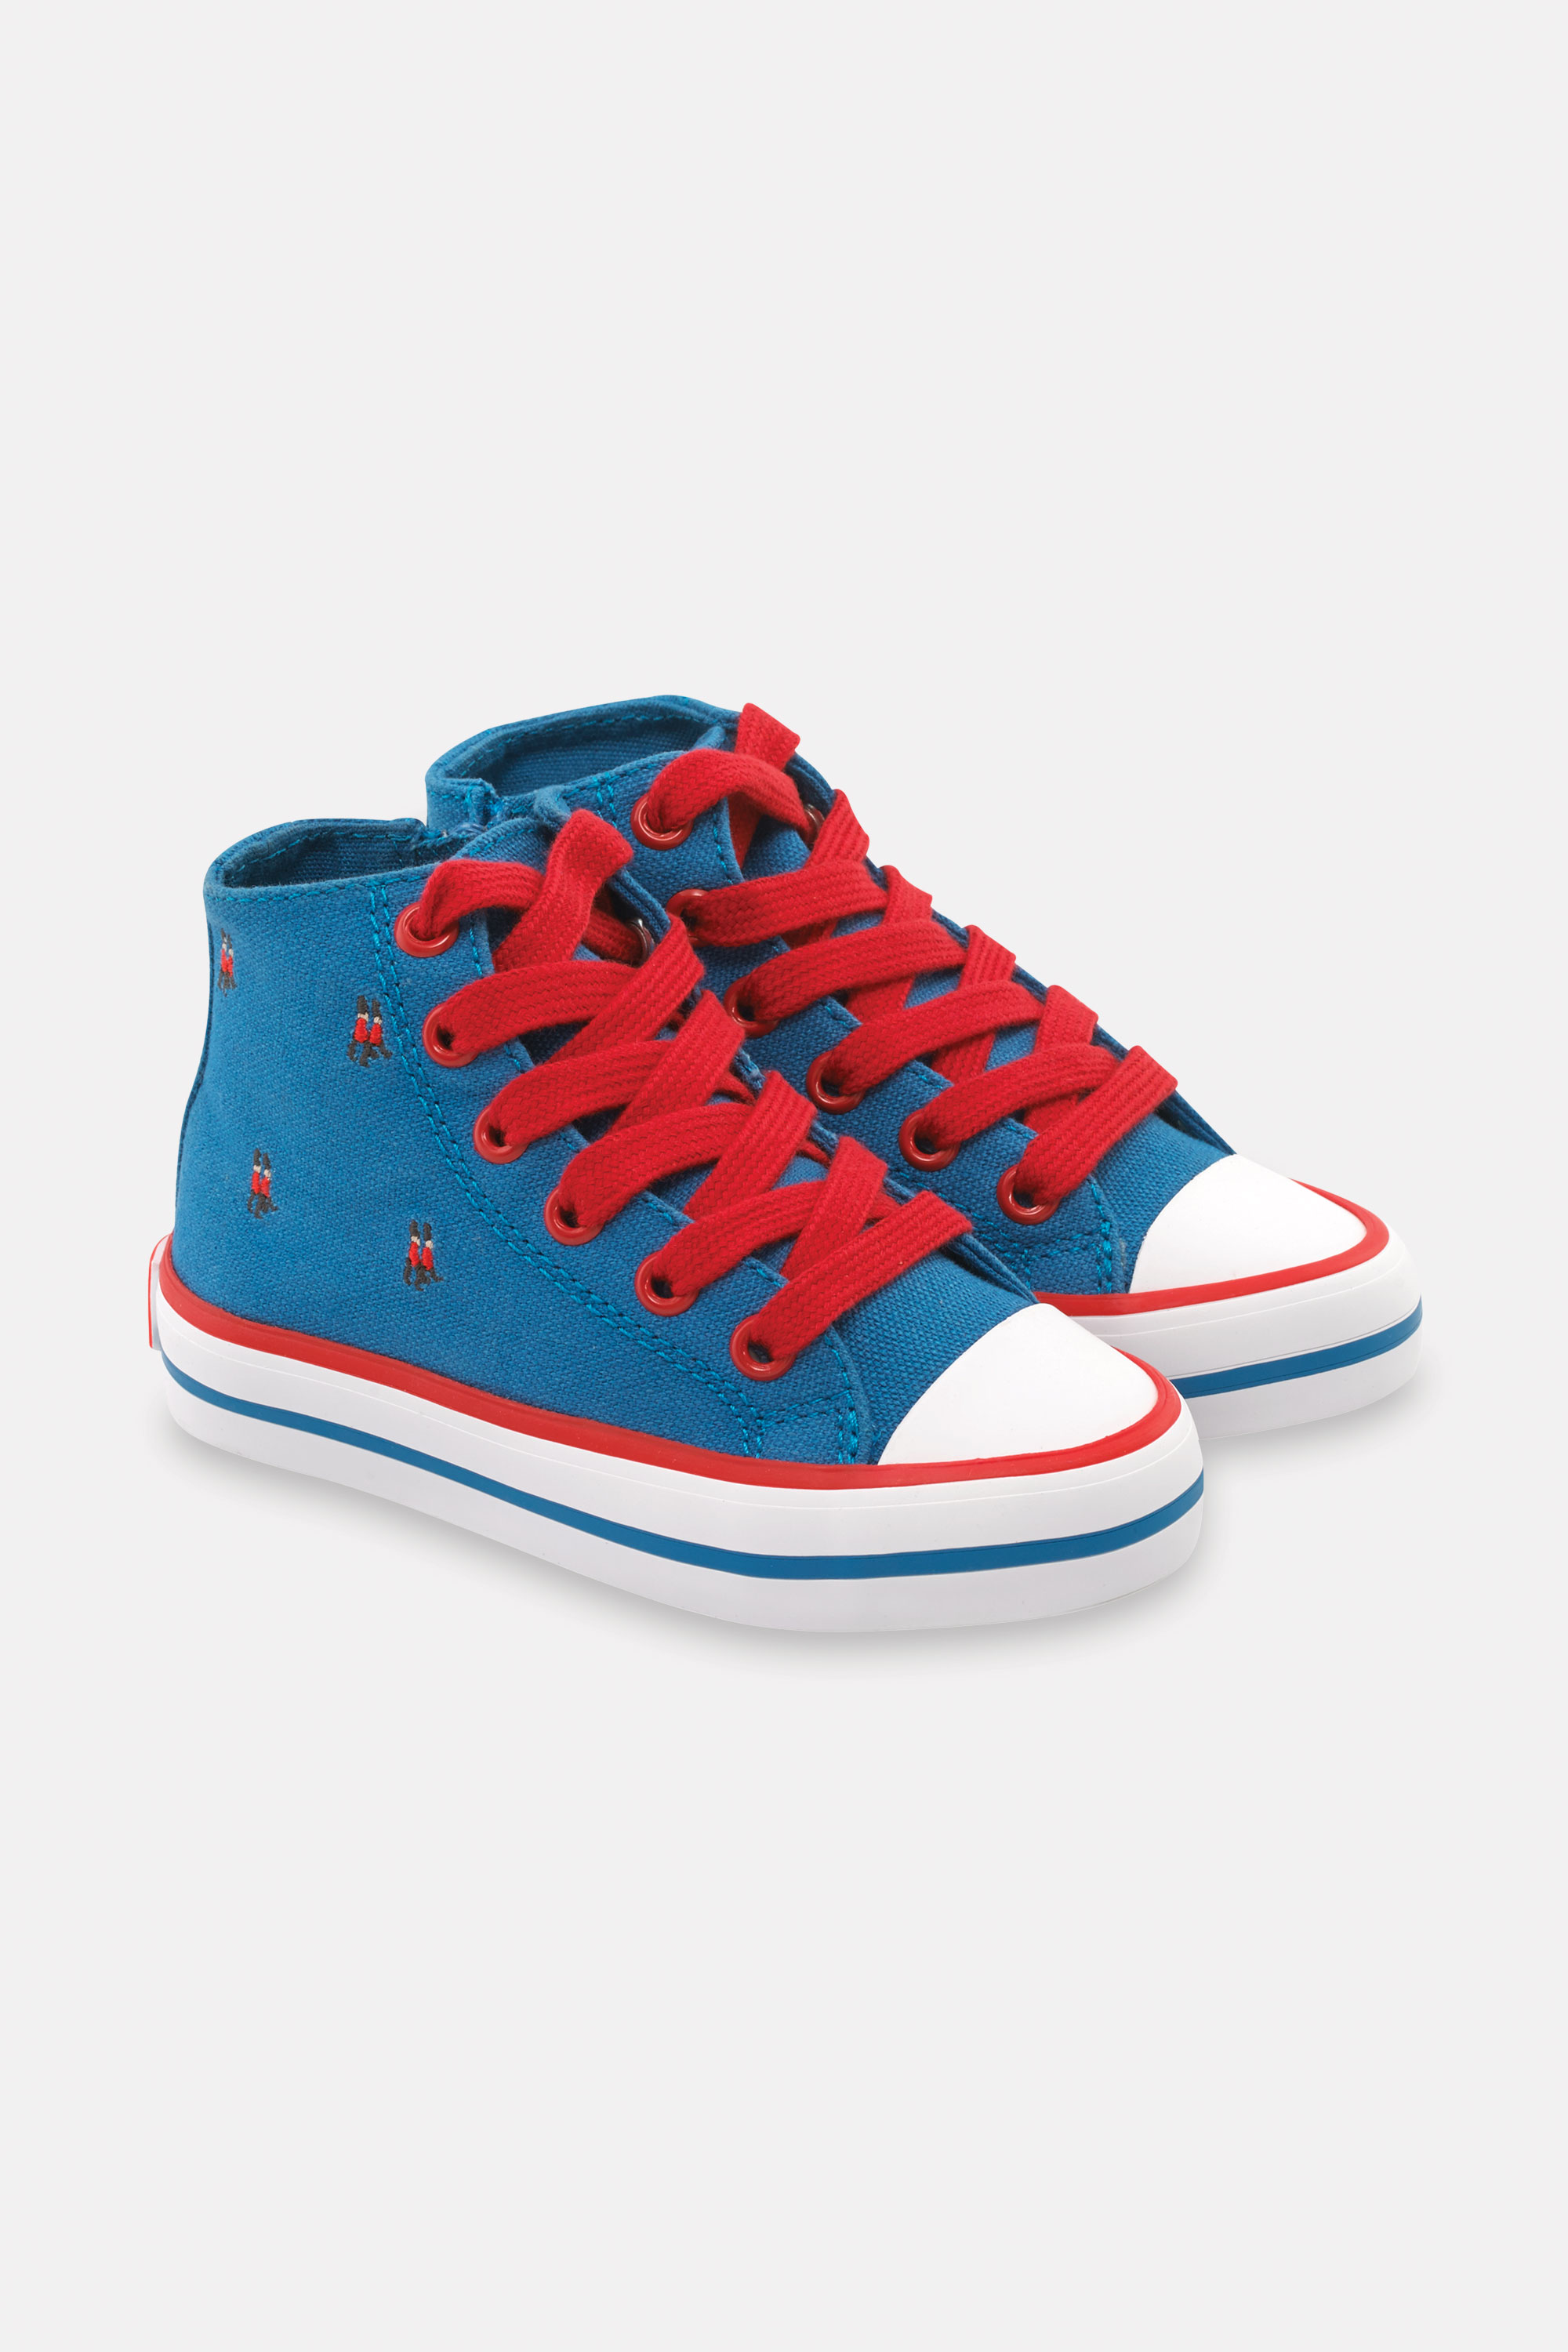 Cath Kidston Kids High Top Trainer Shoes in London Blue, UK 12